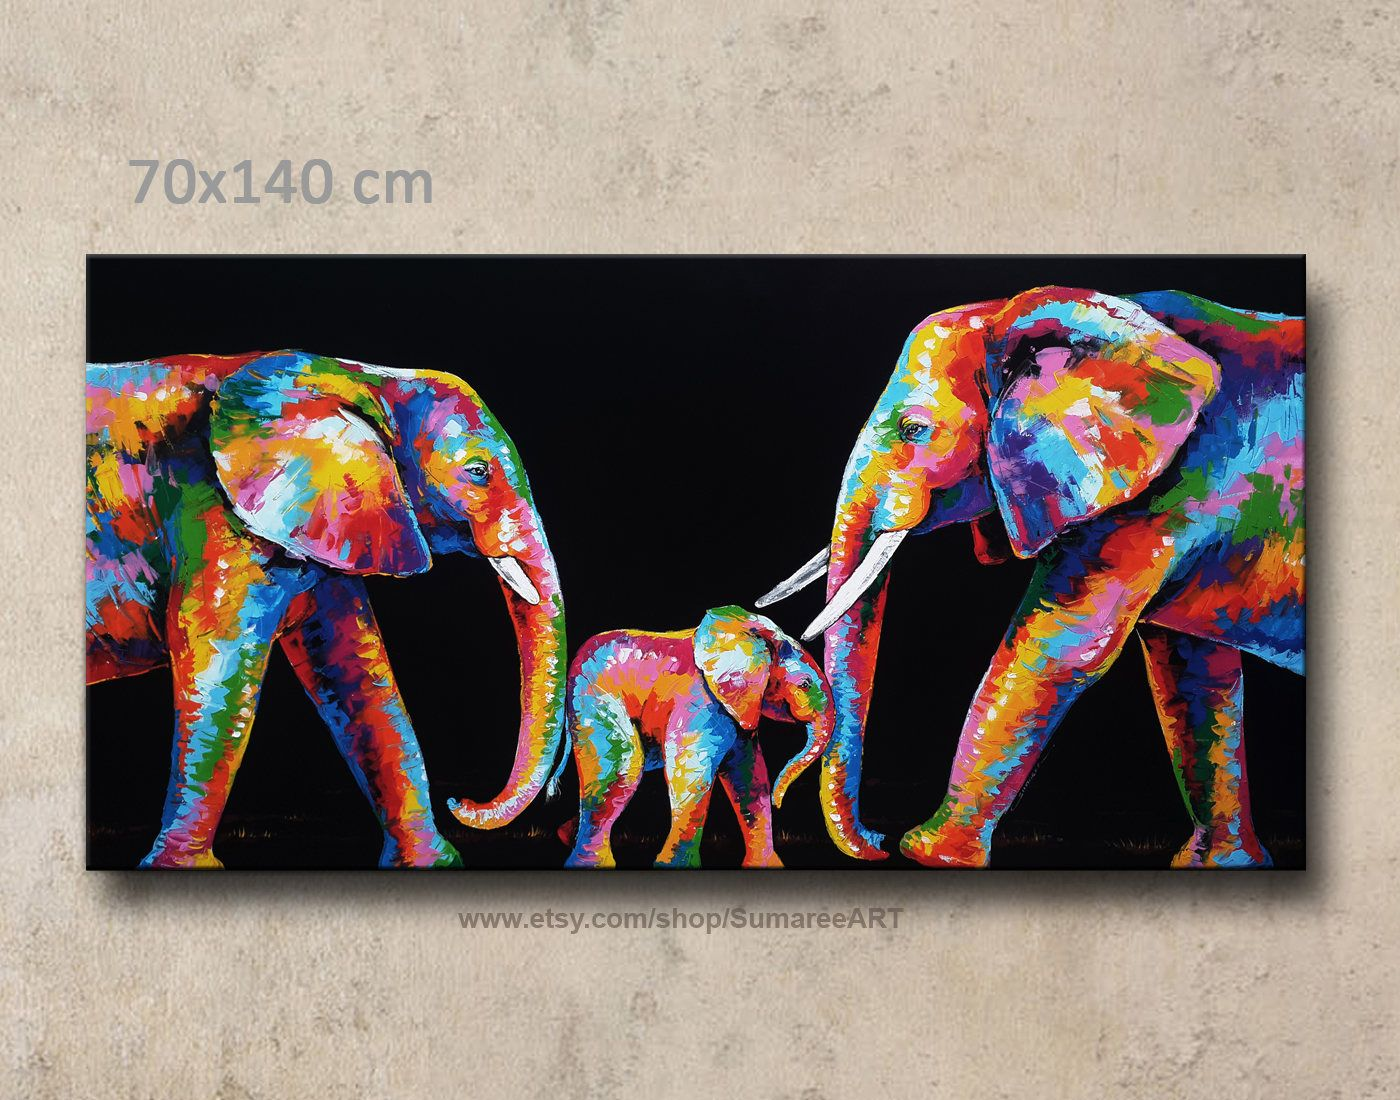 Cuadros Elefantes 70 X 140 Cm Colorful Elephant Painting Wall Decor En 2018